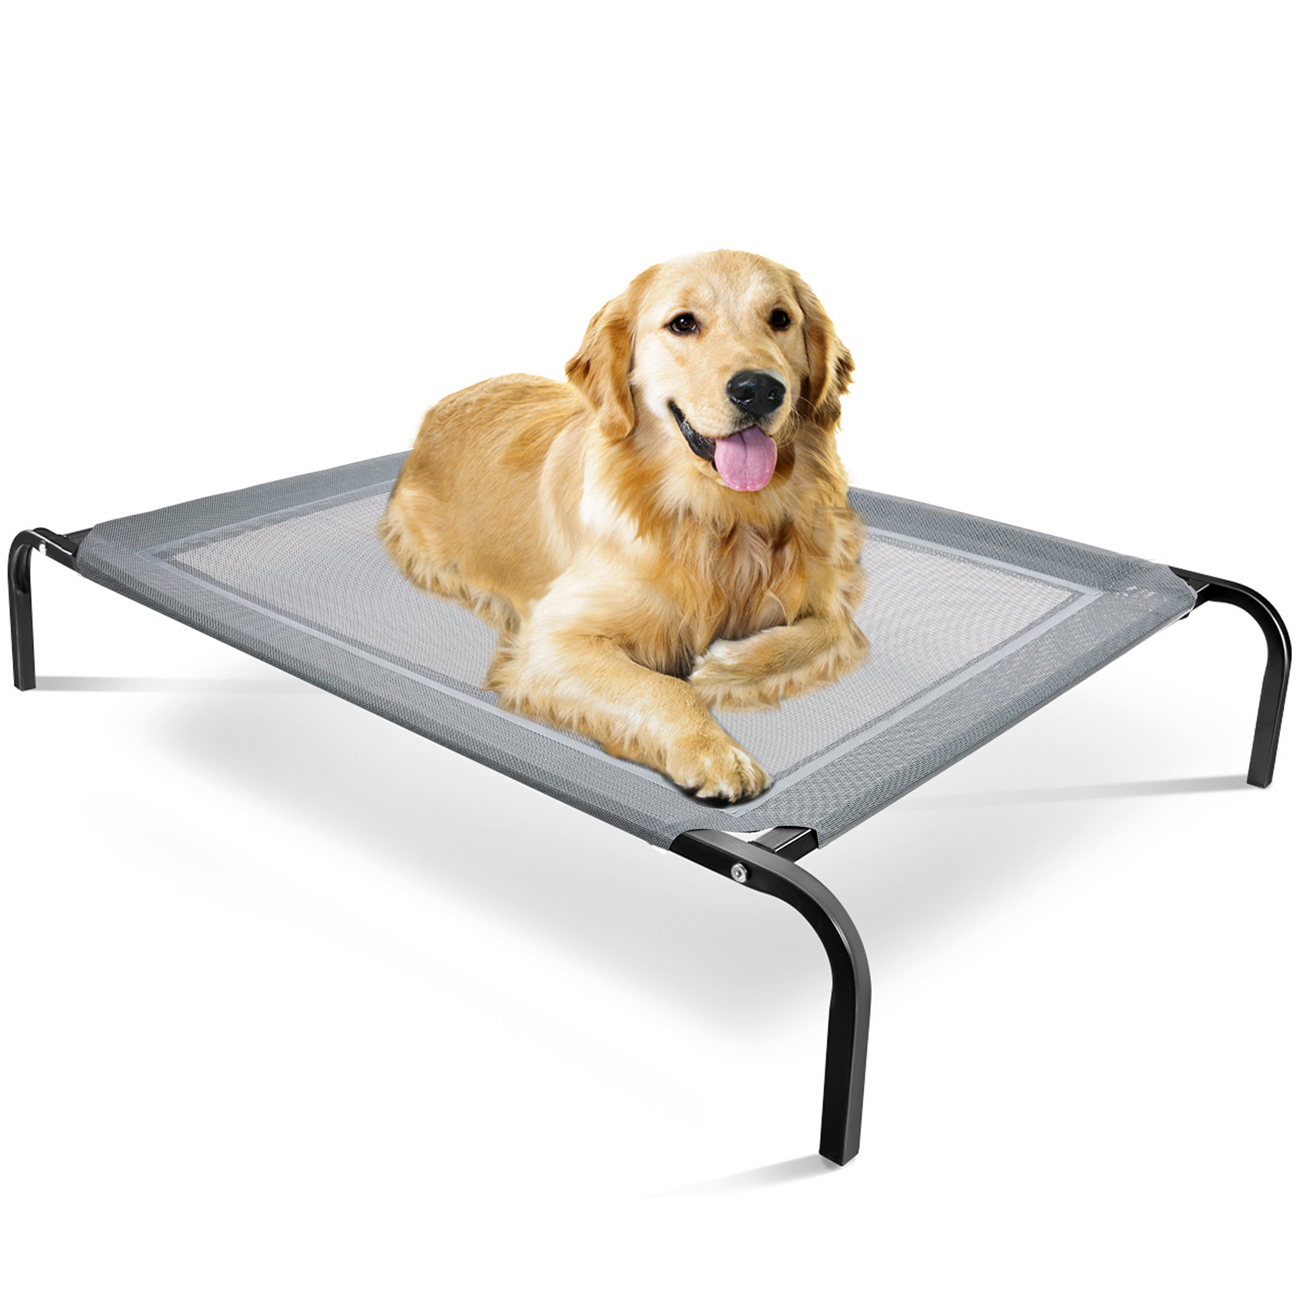 "Oxgord Paws & Pals ""Travel Gear Approved"" Steel-Framed Portable Elevated Pet Cot Bed Cat/Dog"